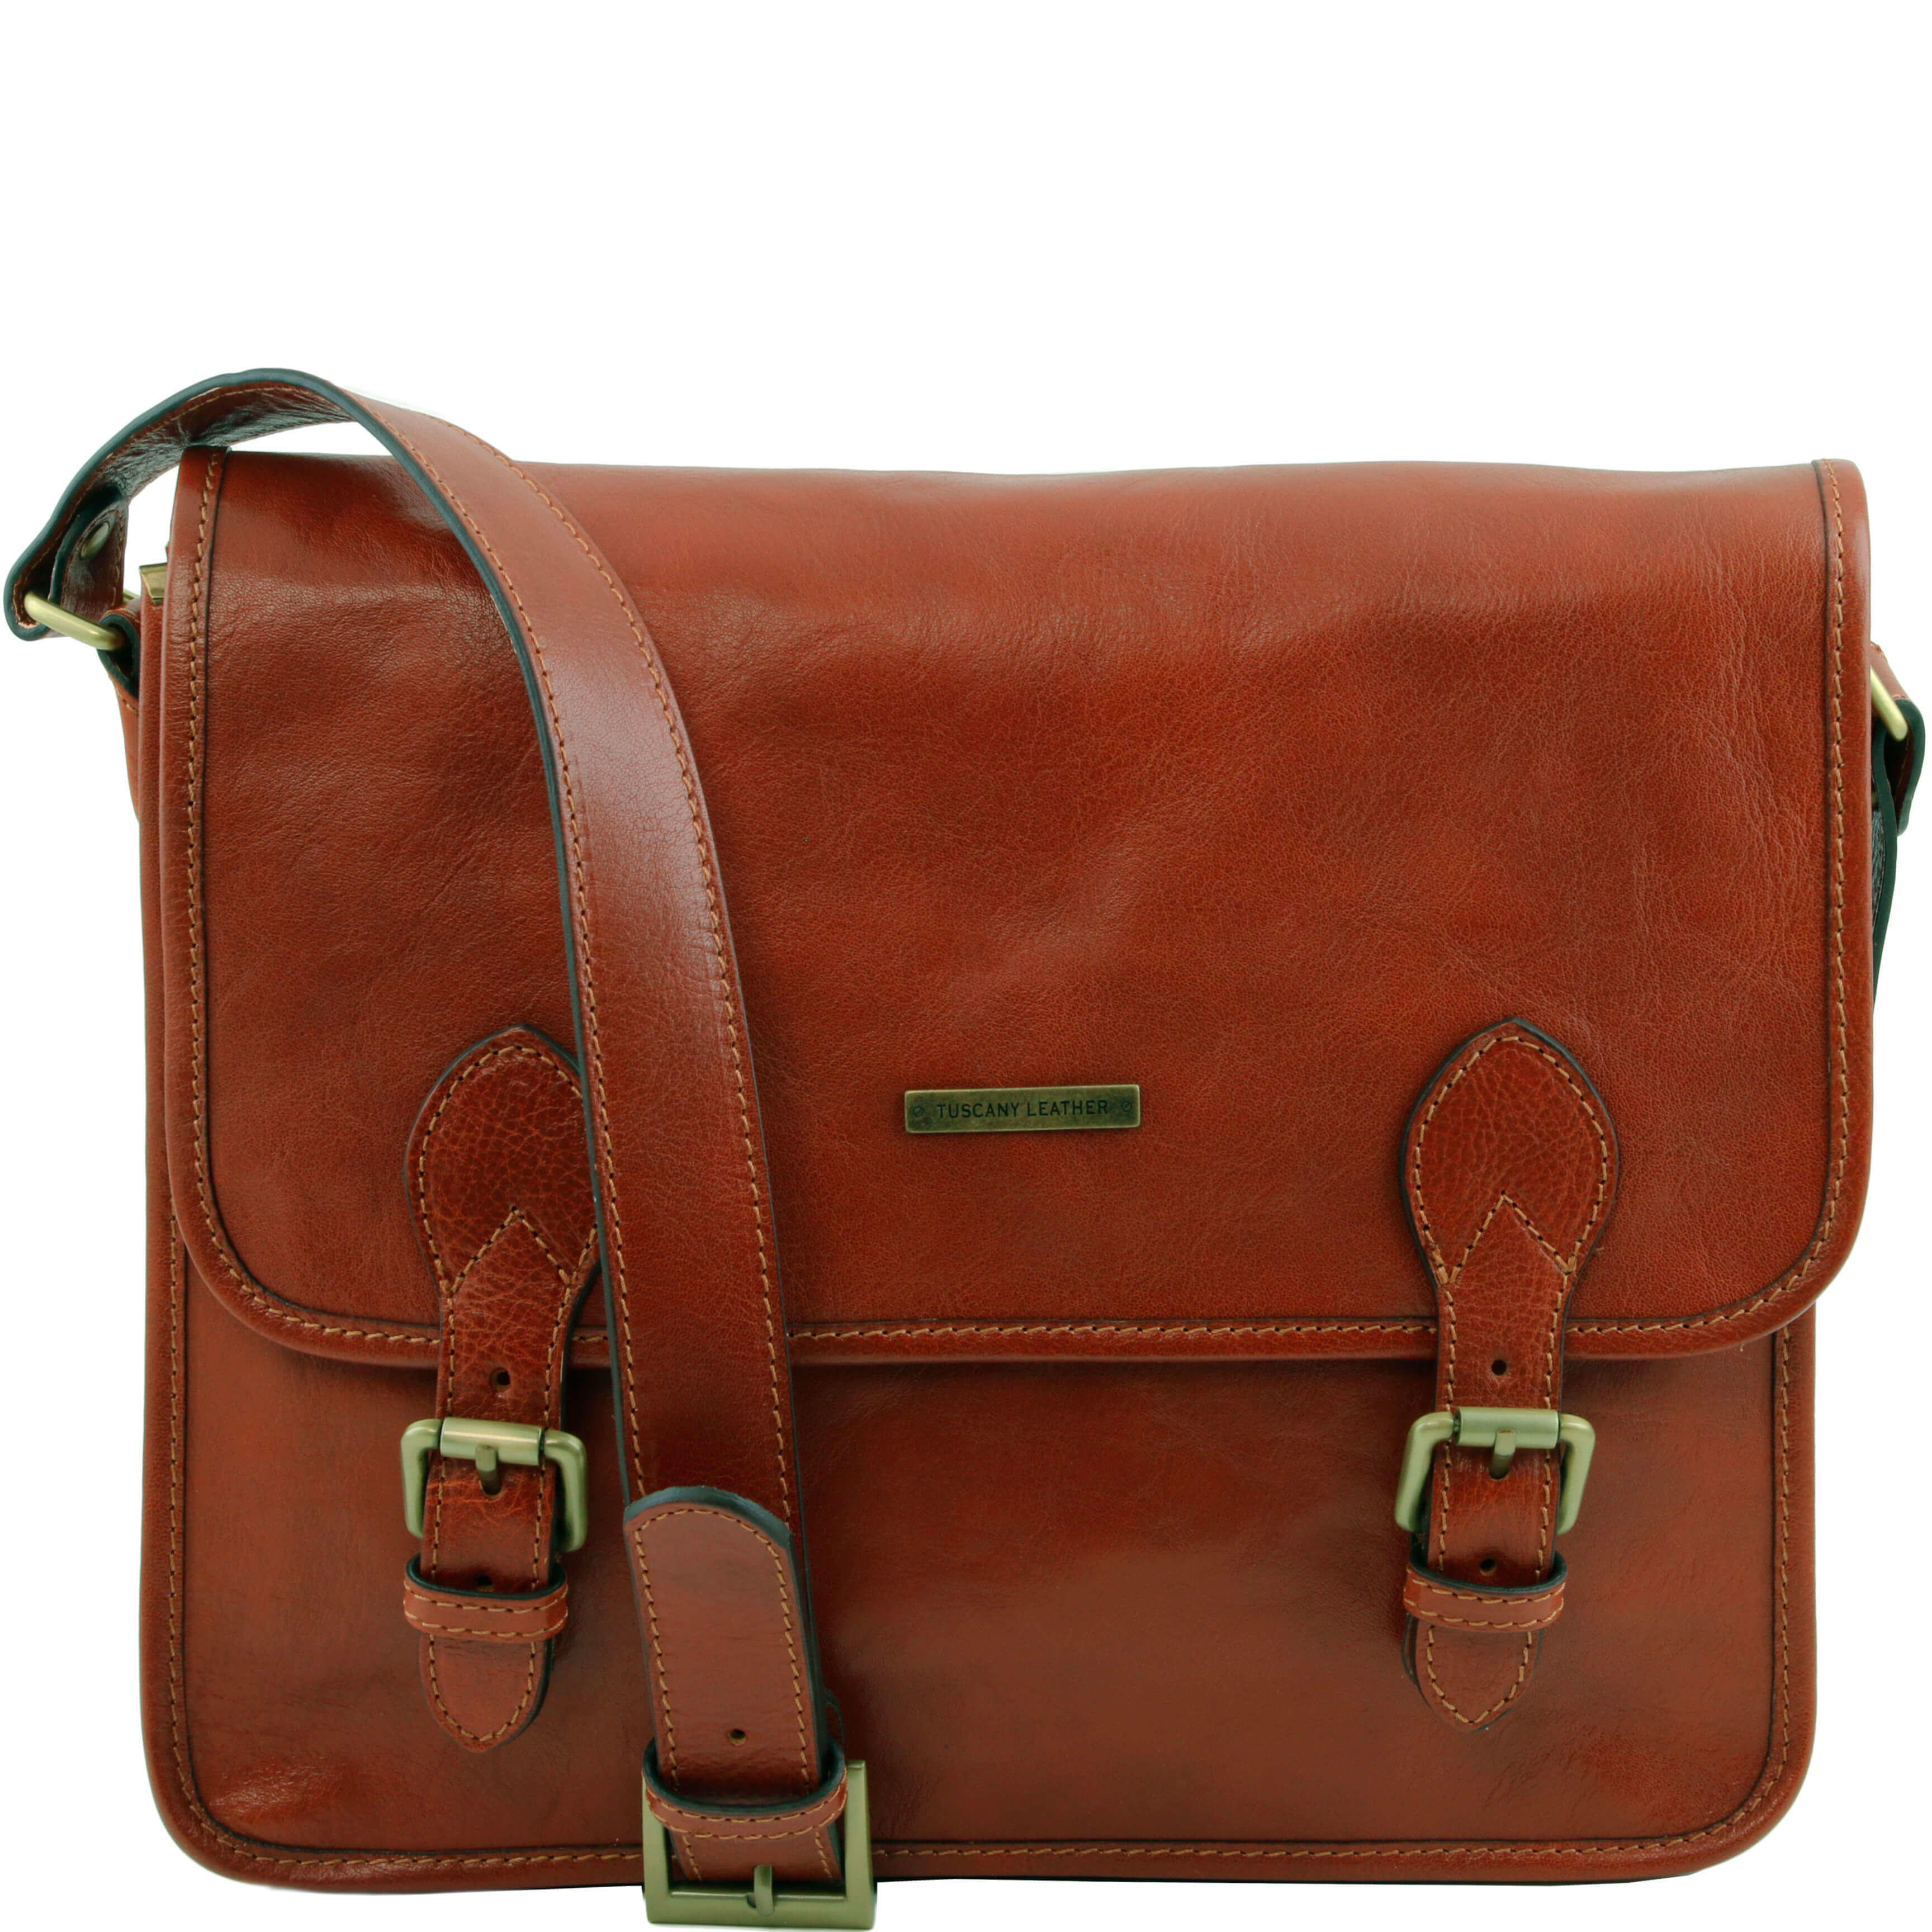 TL141288 Two Compartment Leather-Satchel- Messenger-Cross Body-S